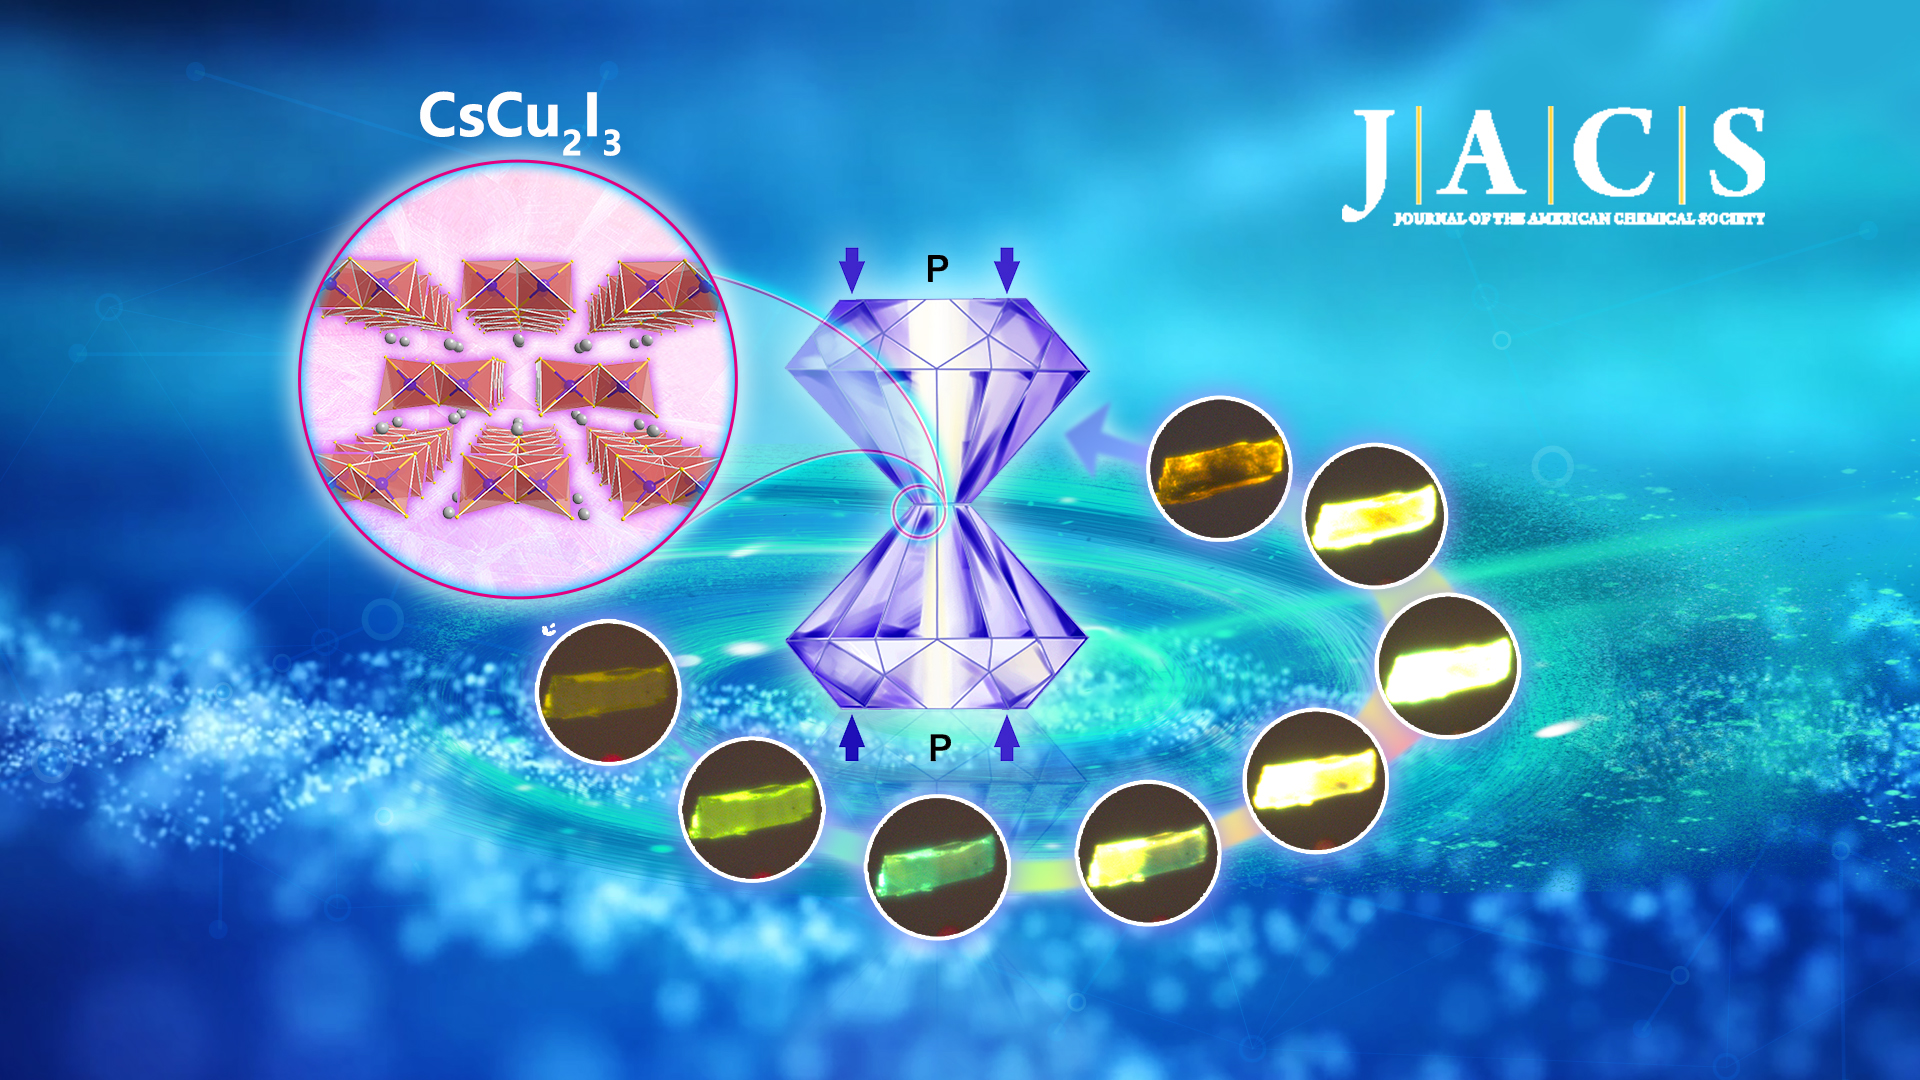 High pressure can produce enhanced light from certain metal compounds